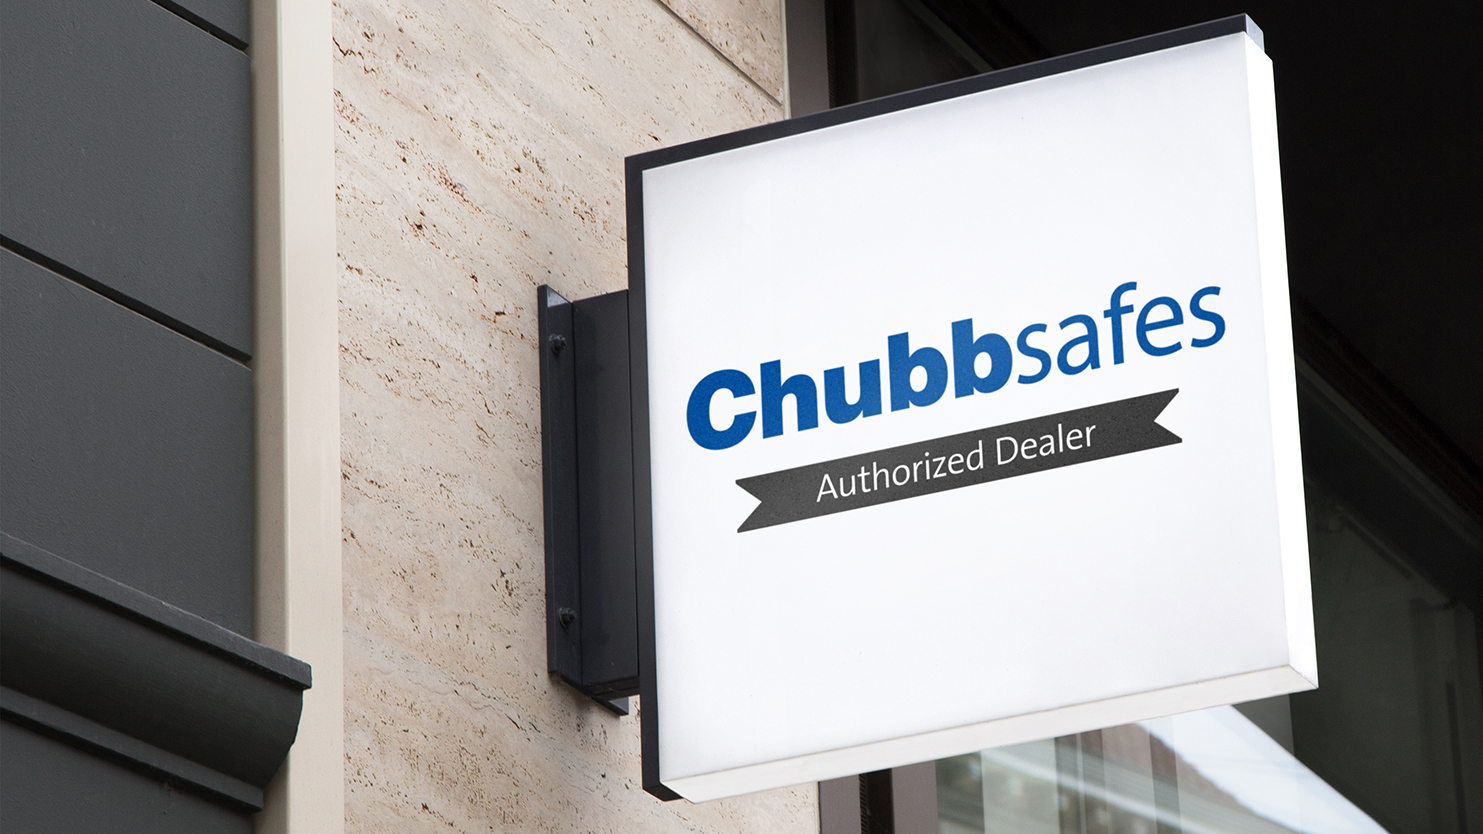 Chubbsafes Dealer Sign Hero Image